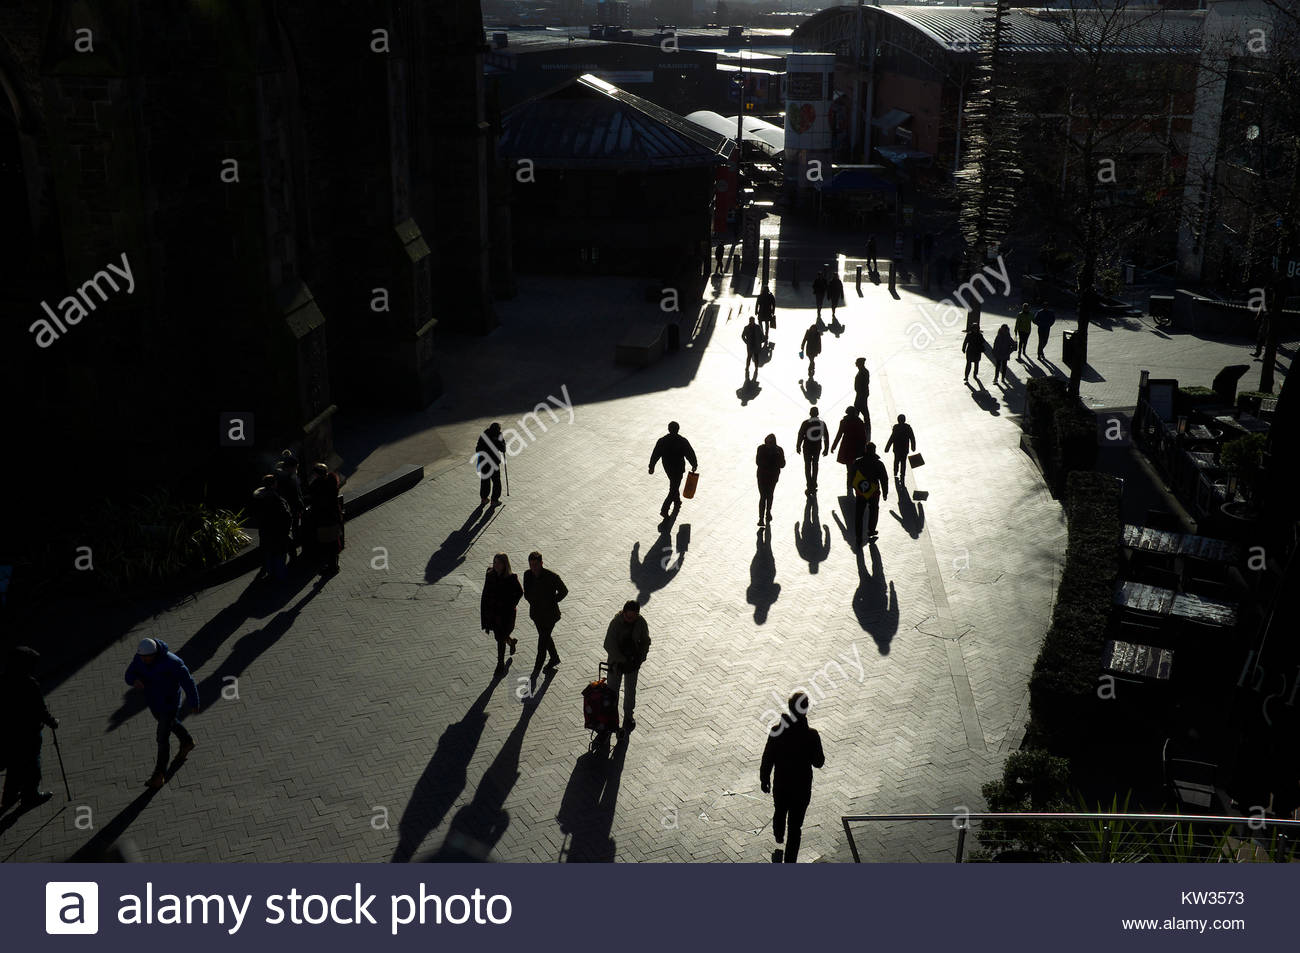 stmartins-square-silhouettes-shadows-of-